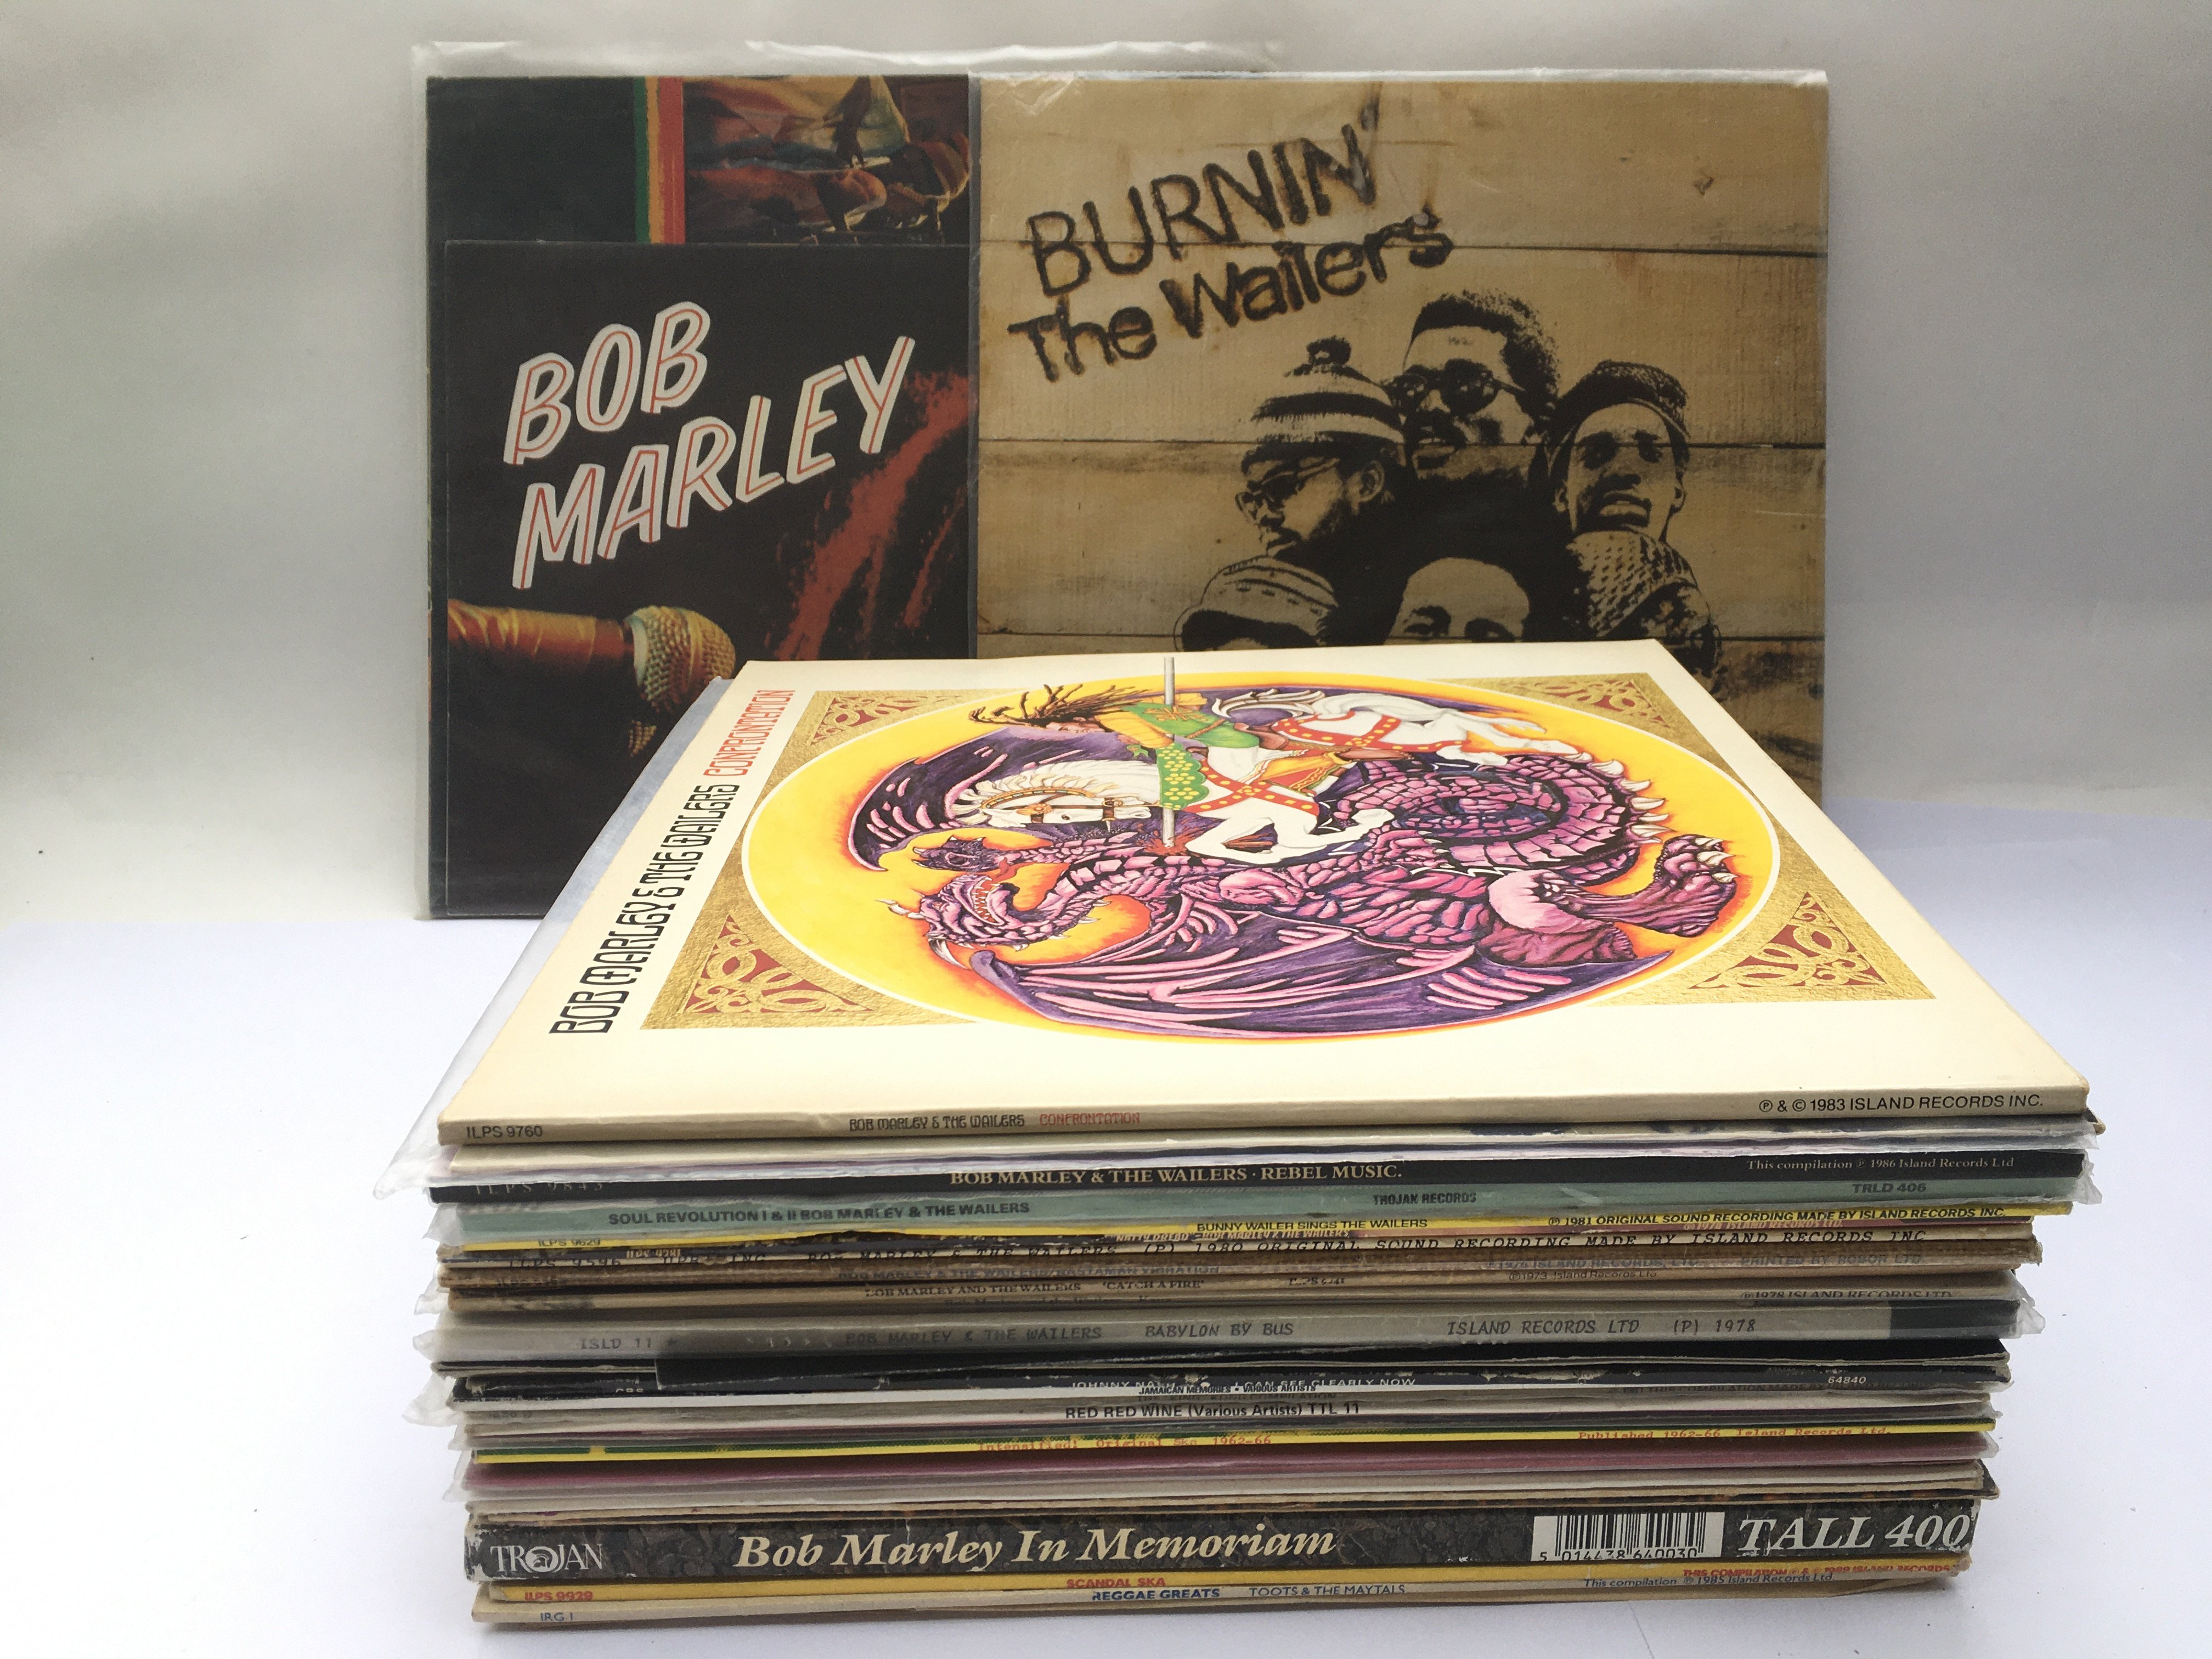 A collection of reggae LPs and 12inch singles by v